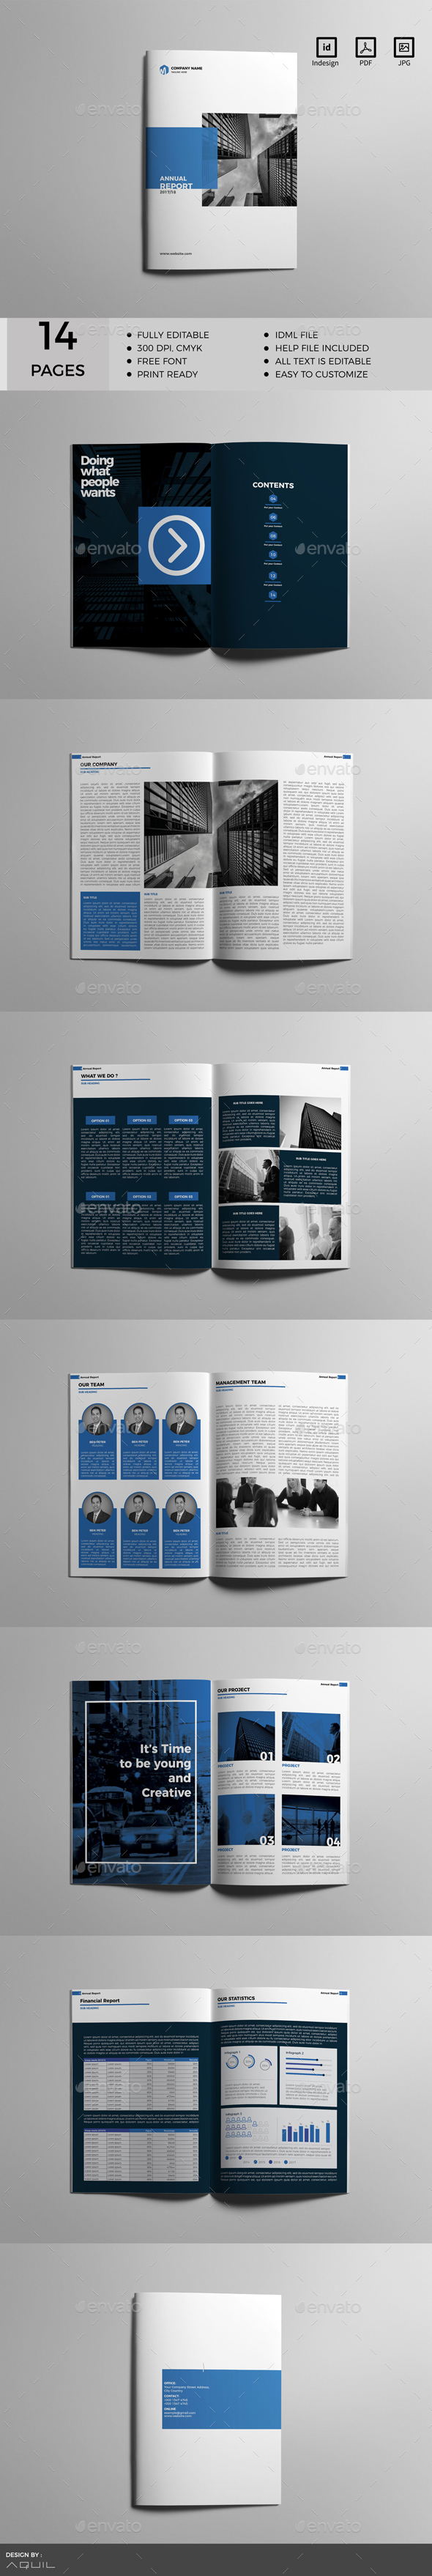 Annual Report Template InDesign INDD   Annual Report Designs   Pinterest